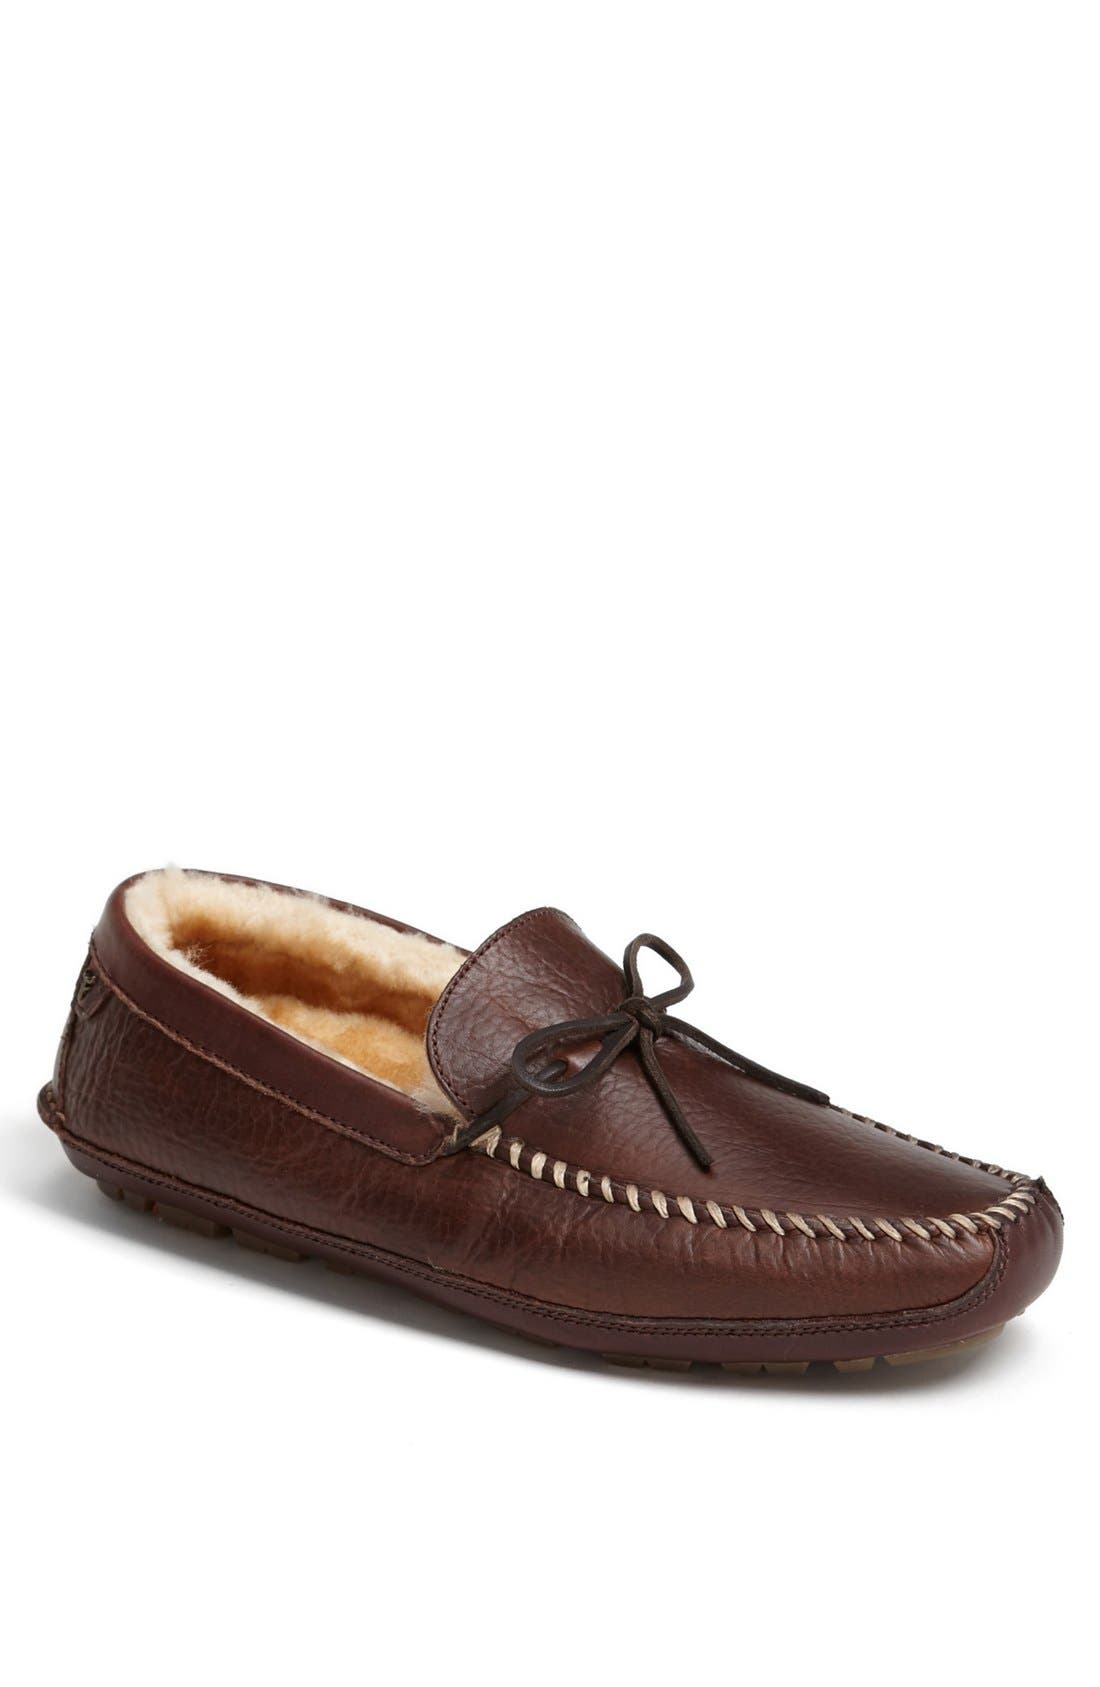 'Polson' Slipper,                             Main thumbnail 1, color,                             Bourbon Bison